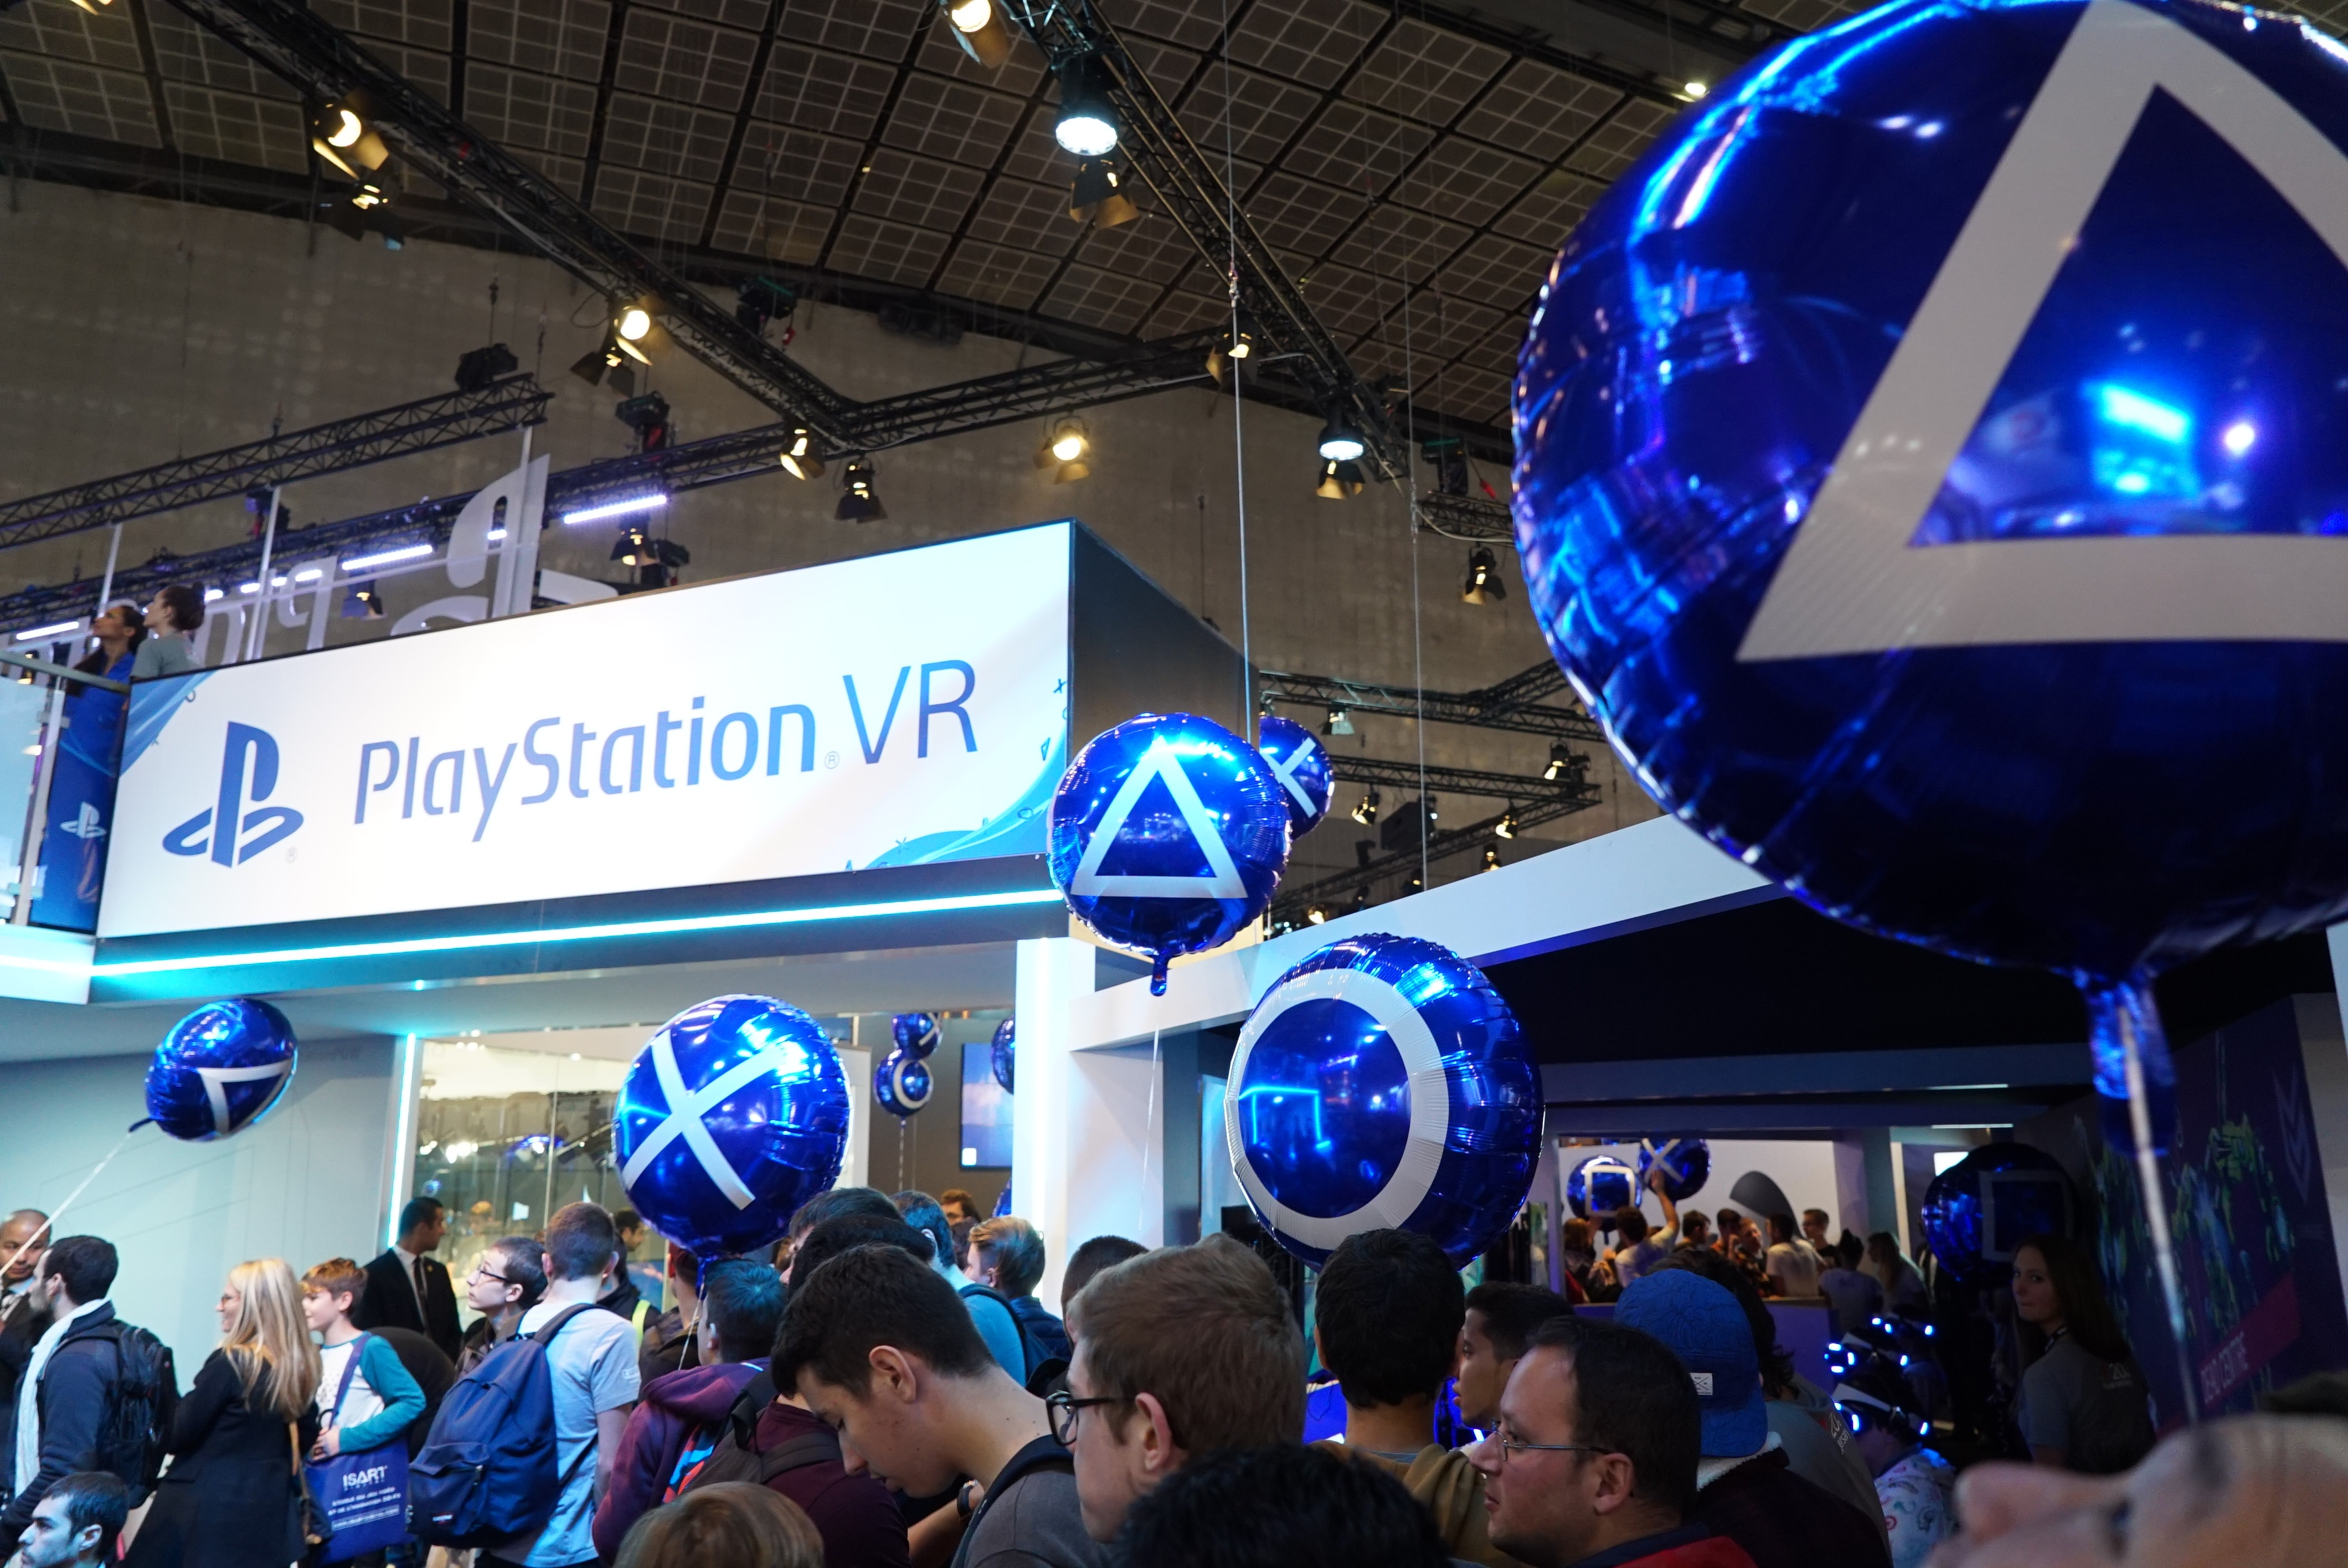 Sony PlayStation celebrates 20 years this year.